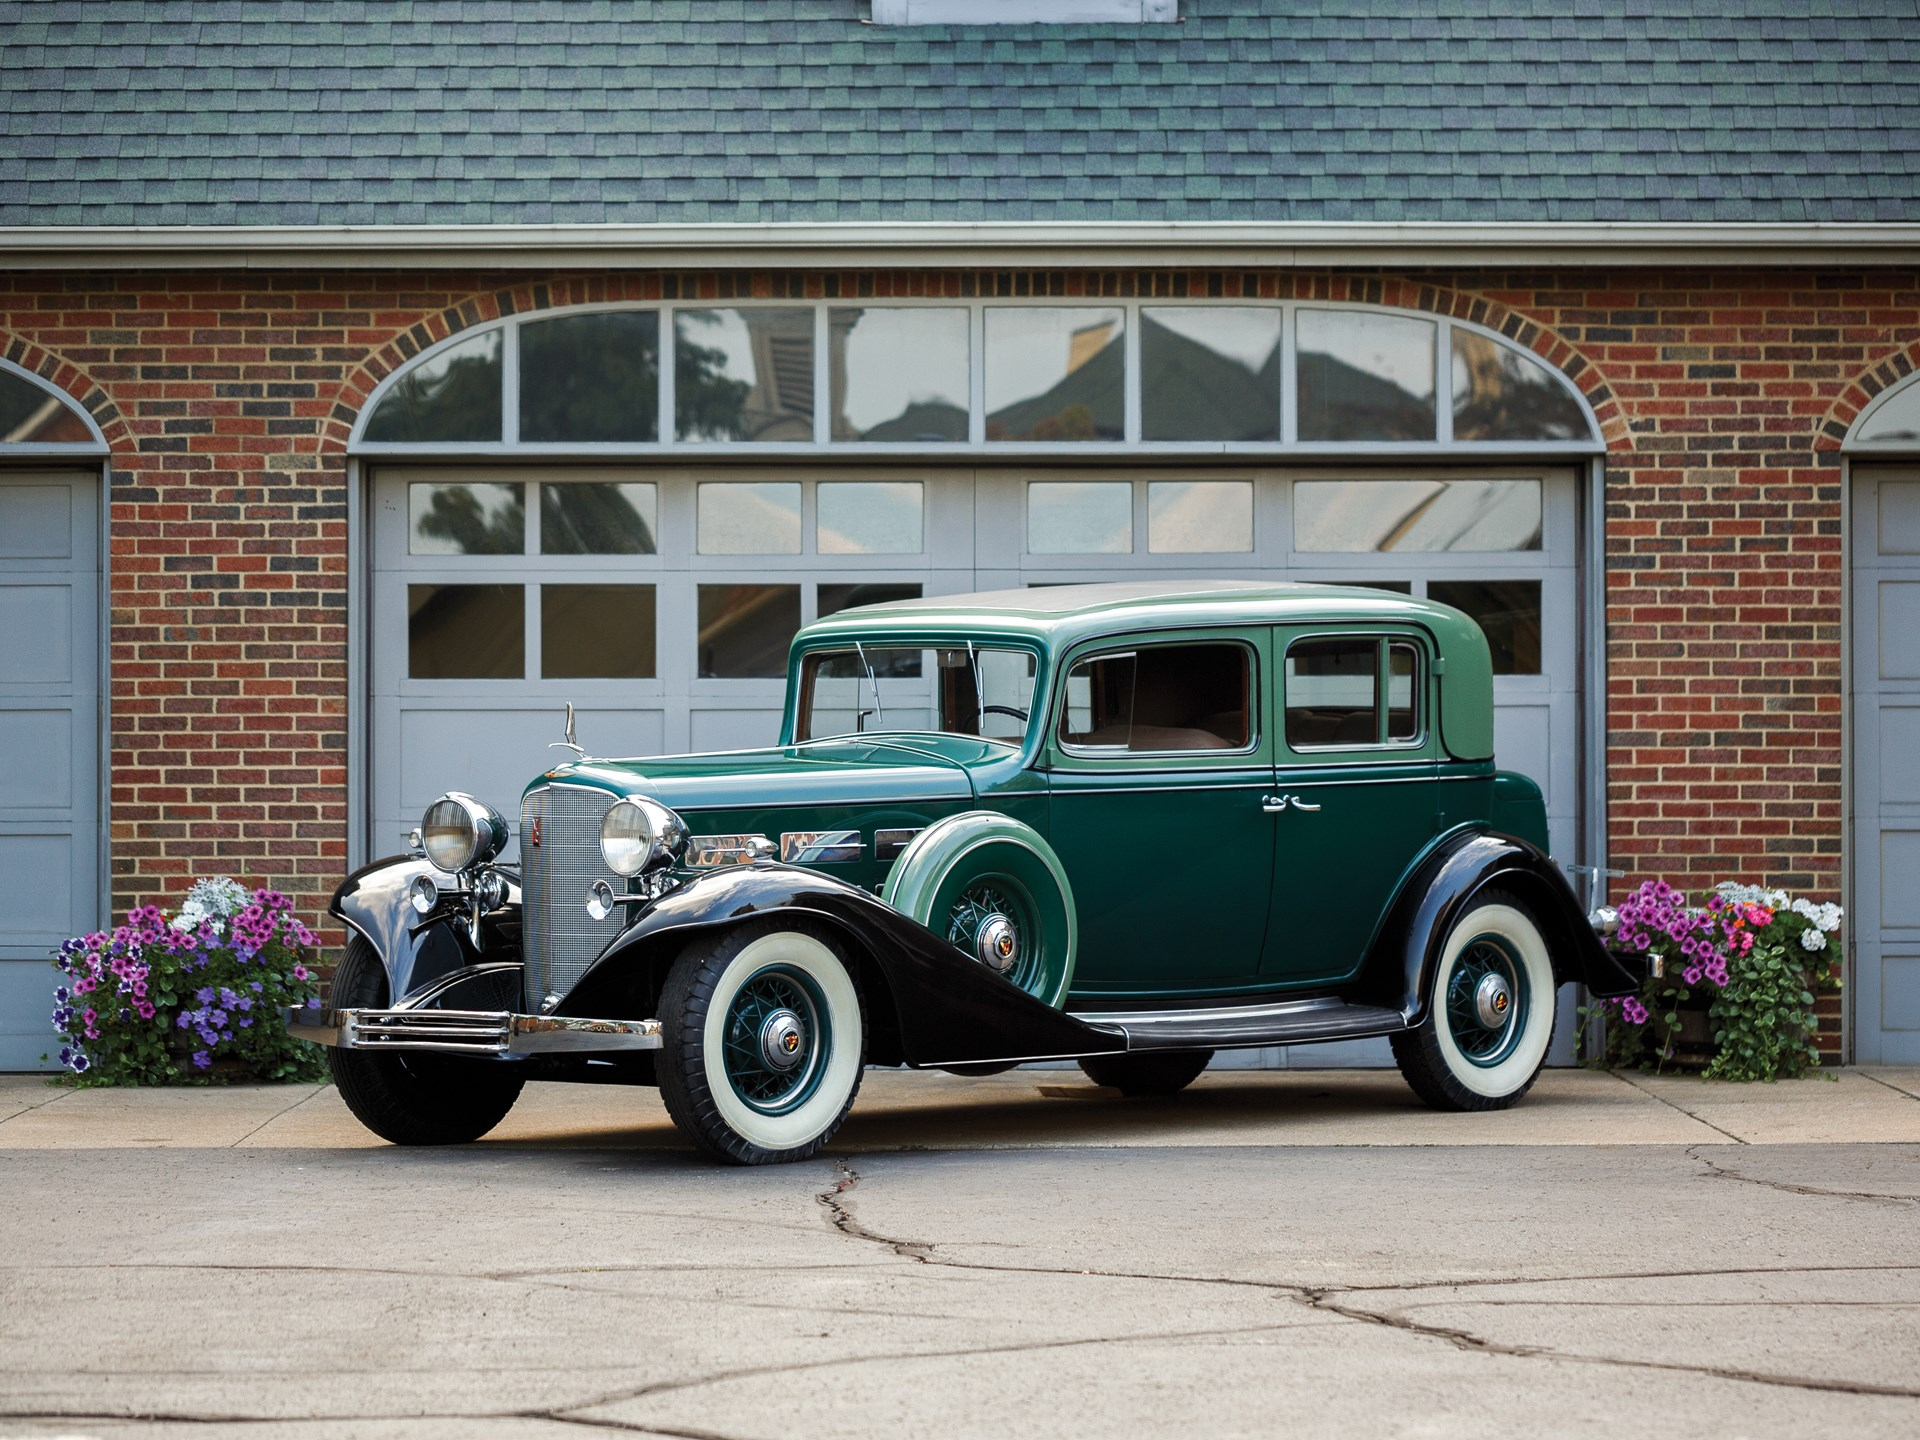 1933 Cadillac V-12 Five-Passenger Town Sedan by Fisher